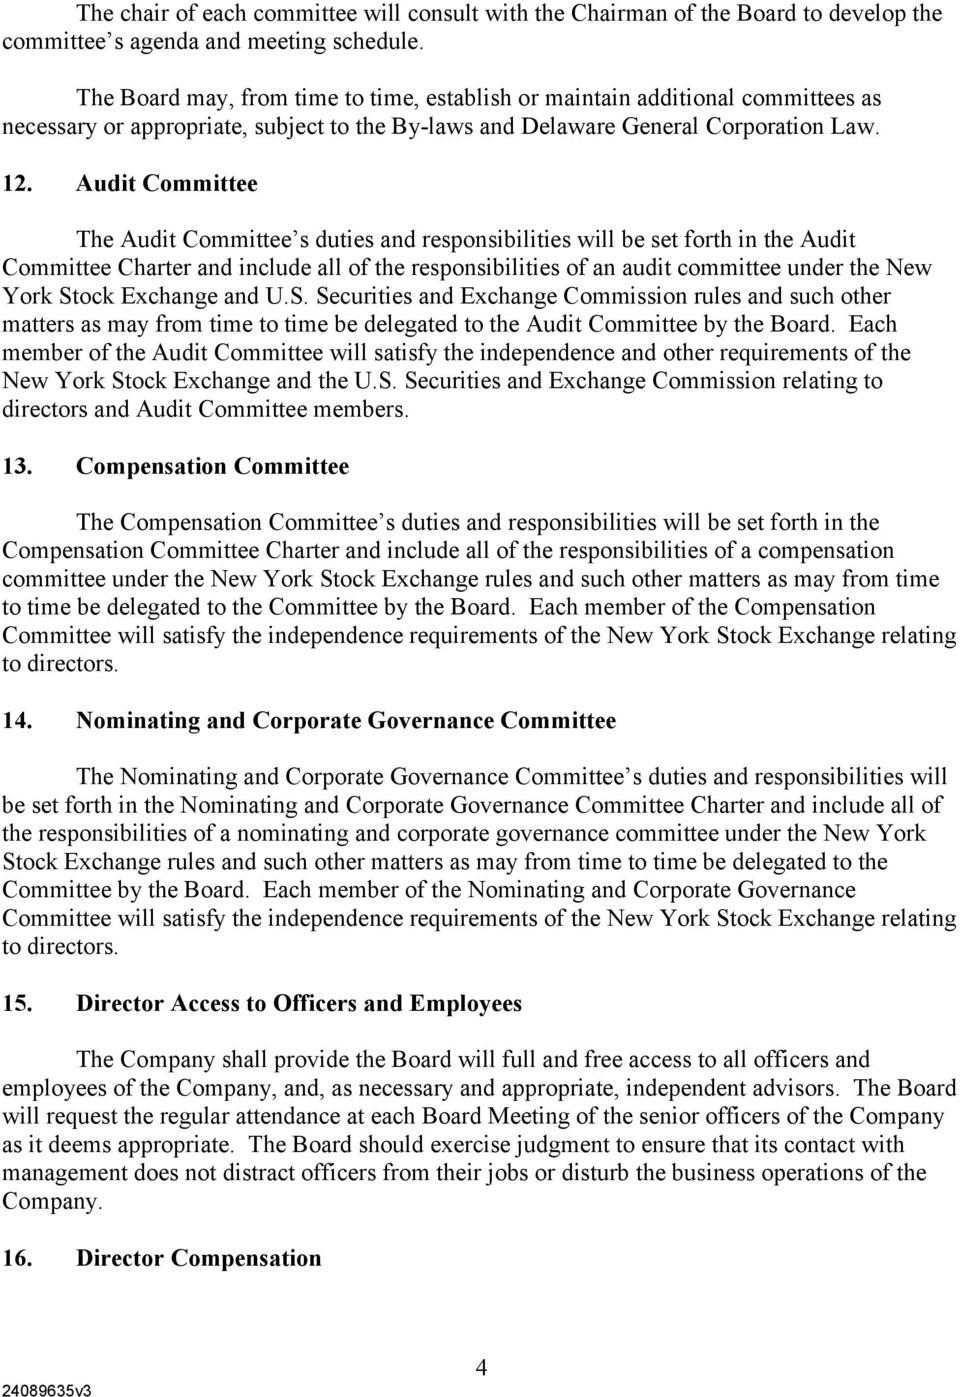 Audit Committee The Audit Committee s duties and responsibilities will be set forth in the Audit Committee Charter and include all of the responsibilities of an audit committee under the New York